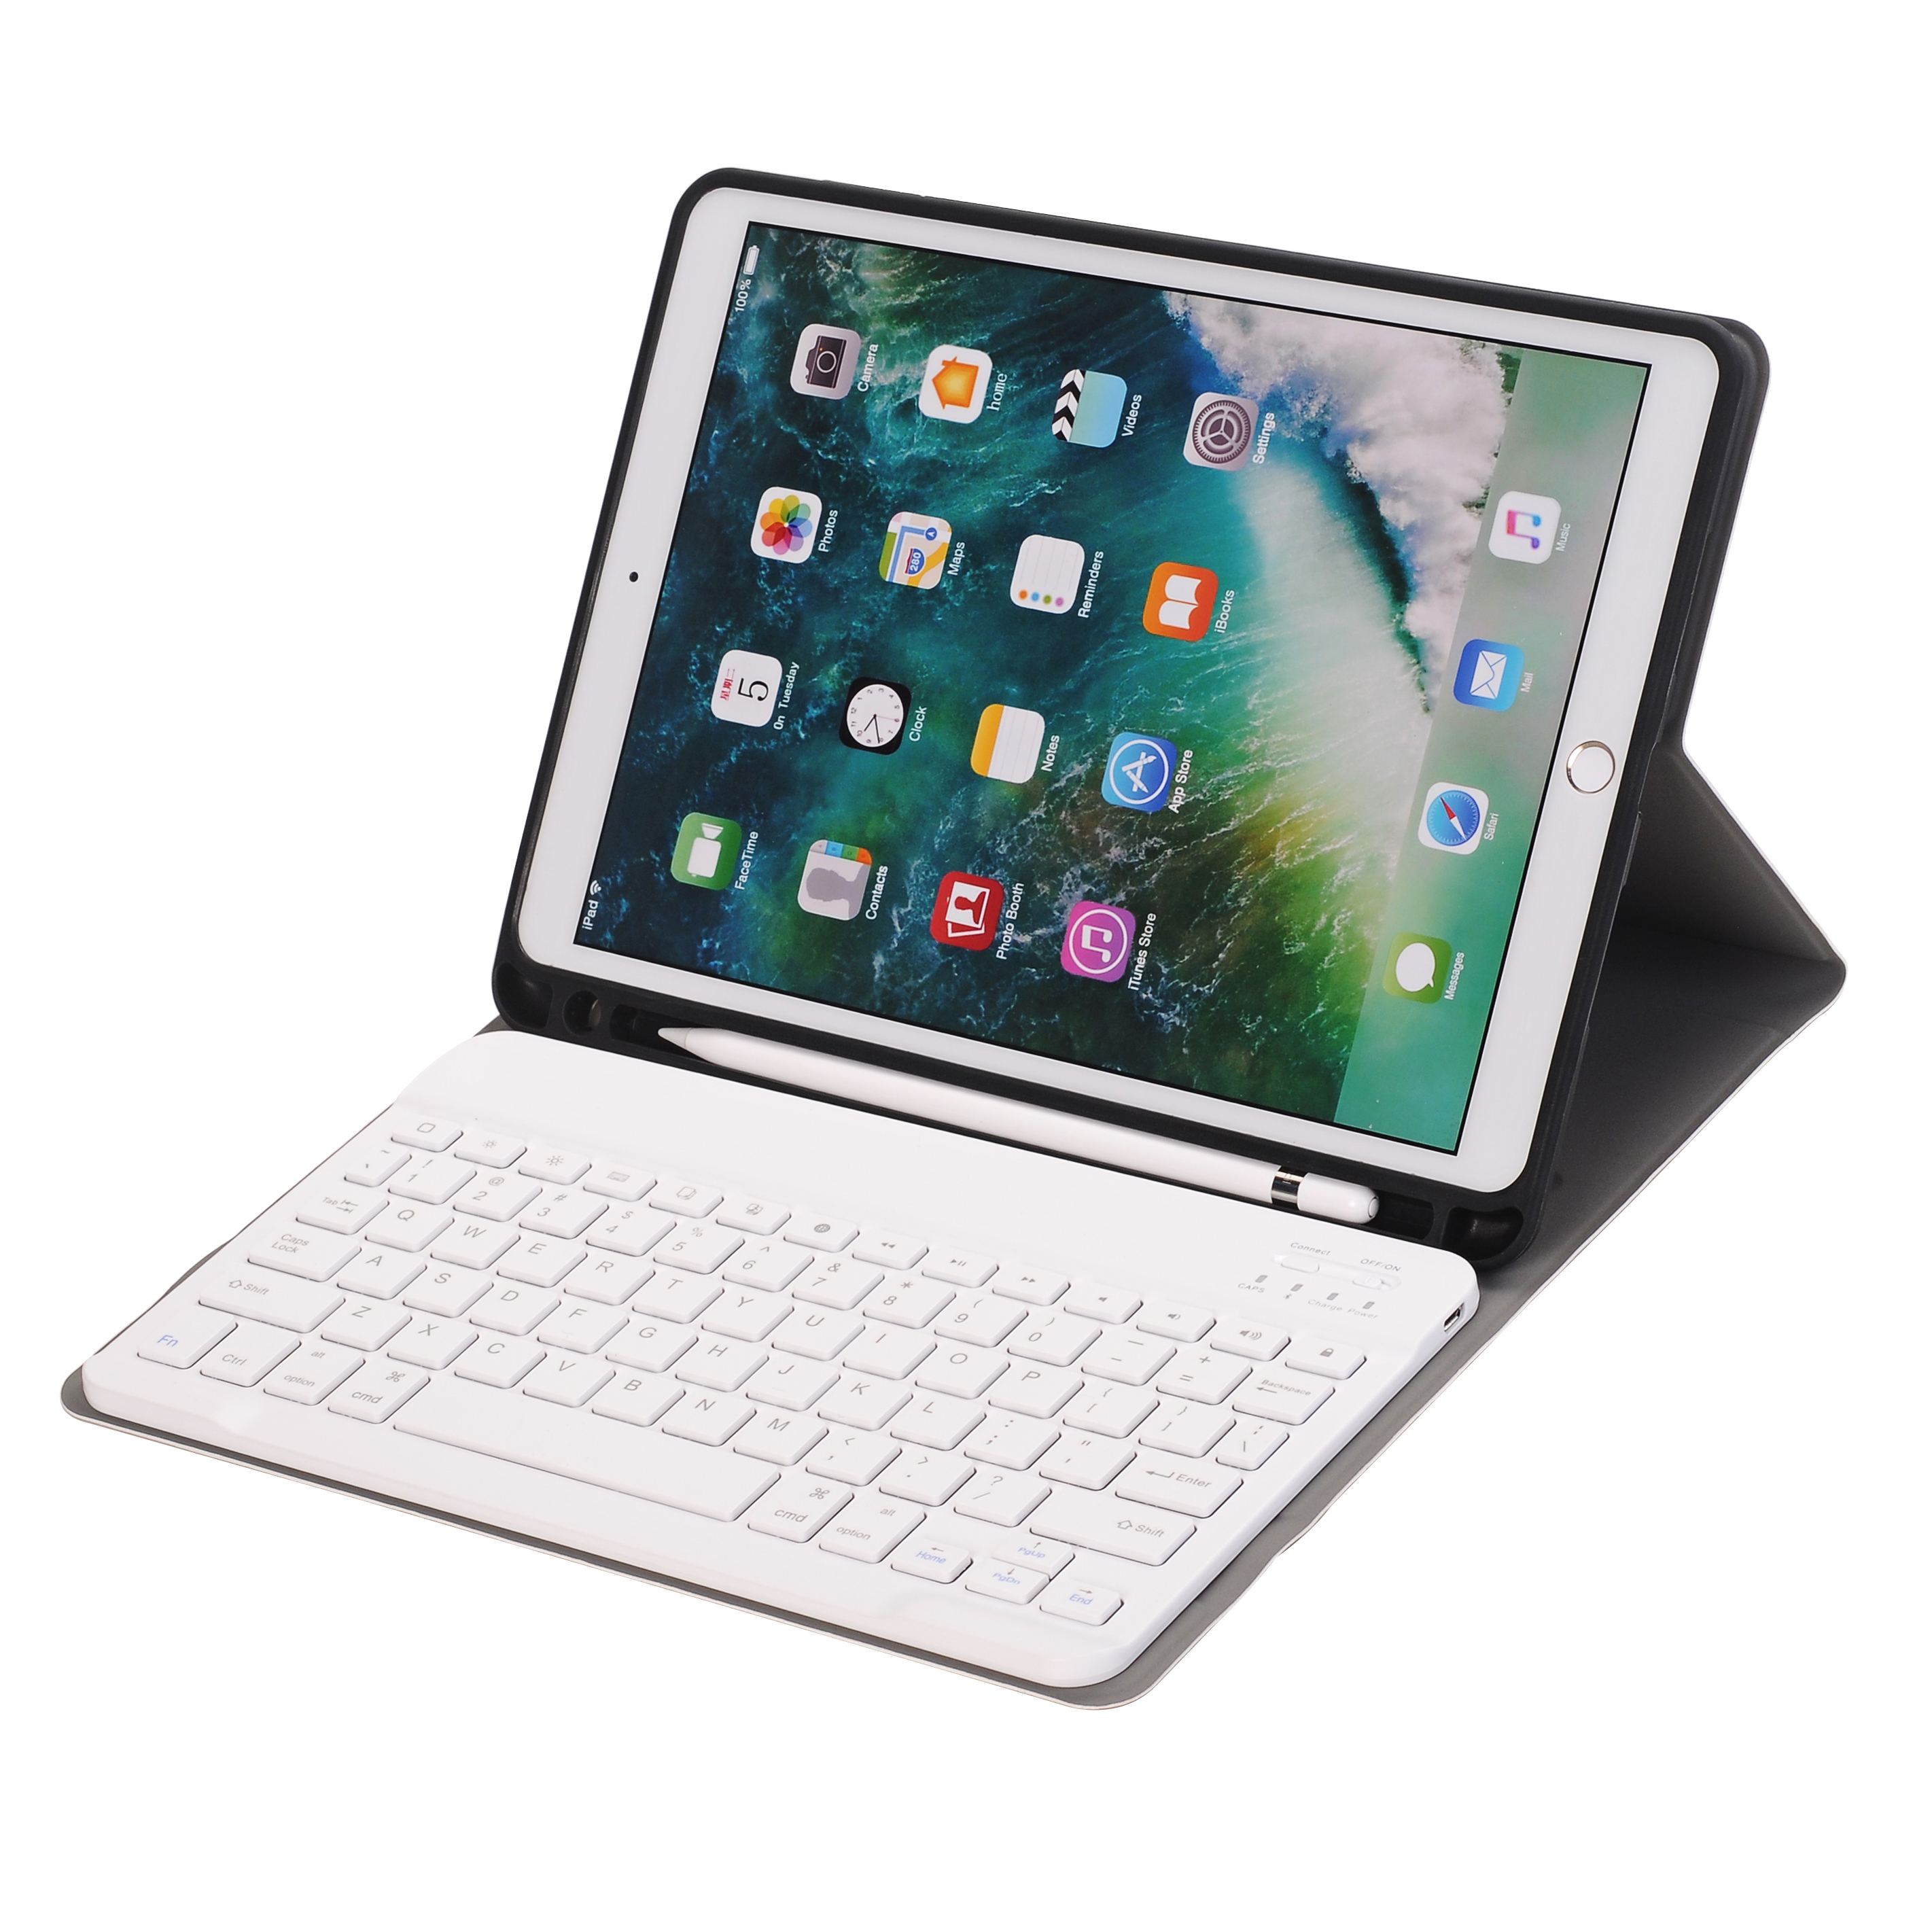 ABS Slim Portable Wireless Detachable Bluetooth Keyboard Case for <strong>iPad</strong> Pro 10.5/ Air 10.5 2019 with Pen Slot